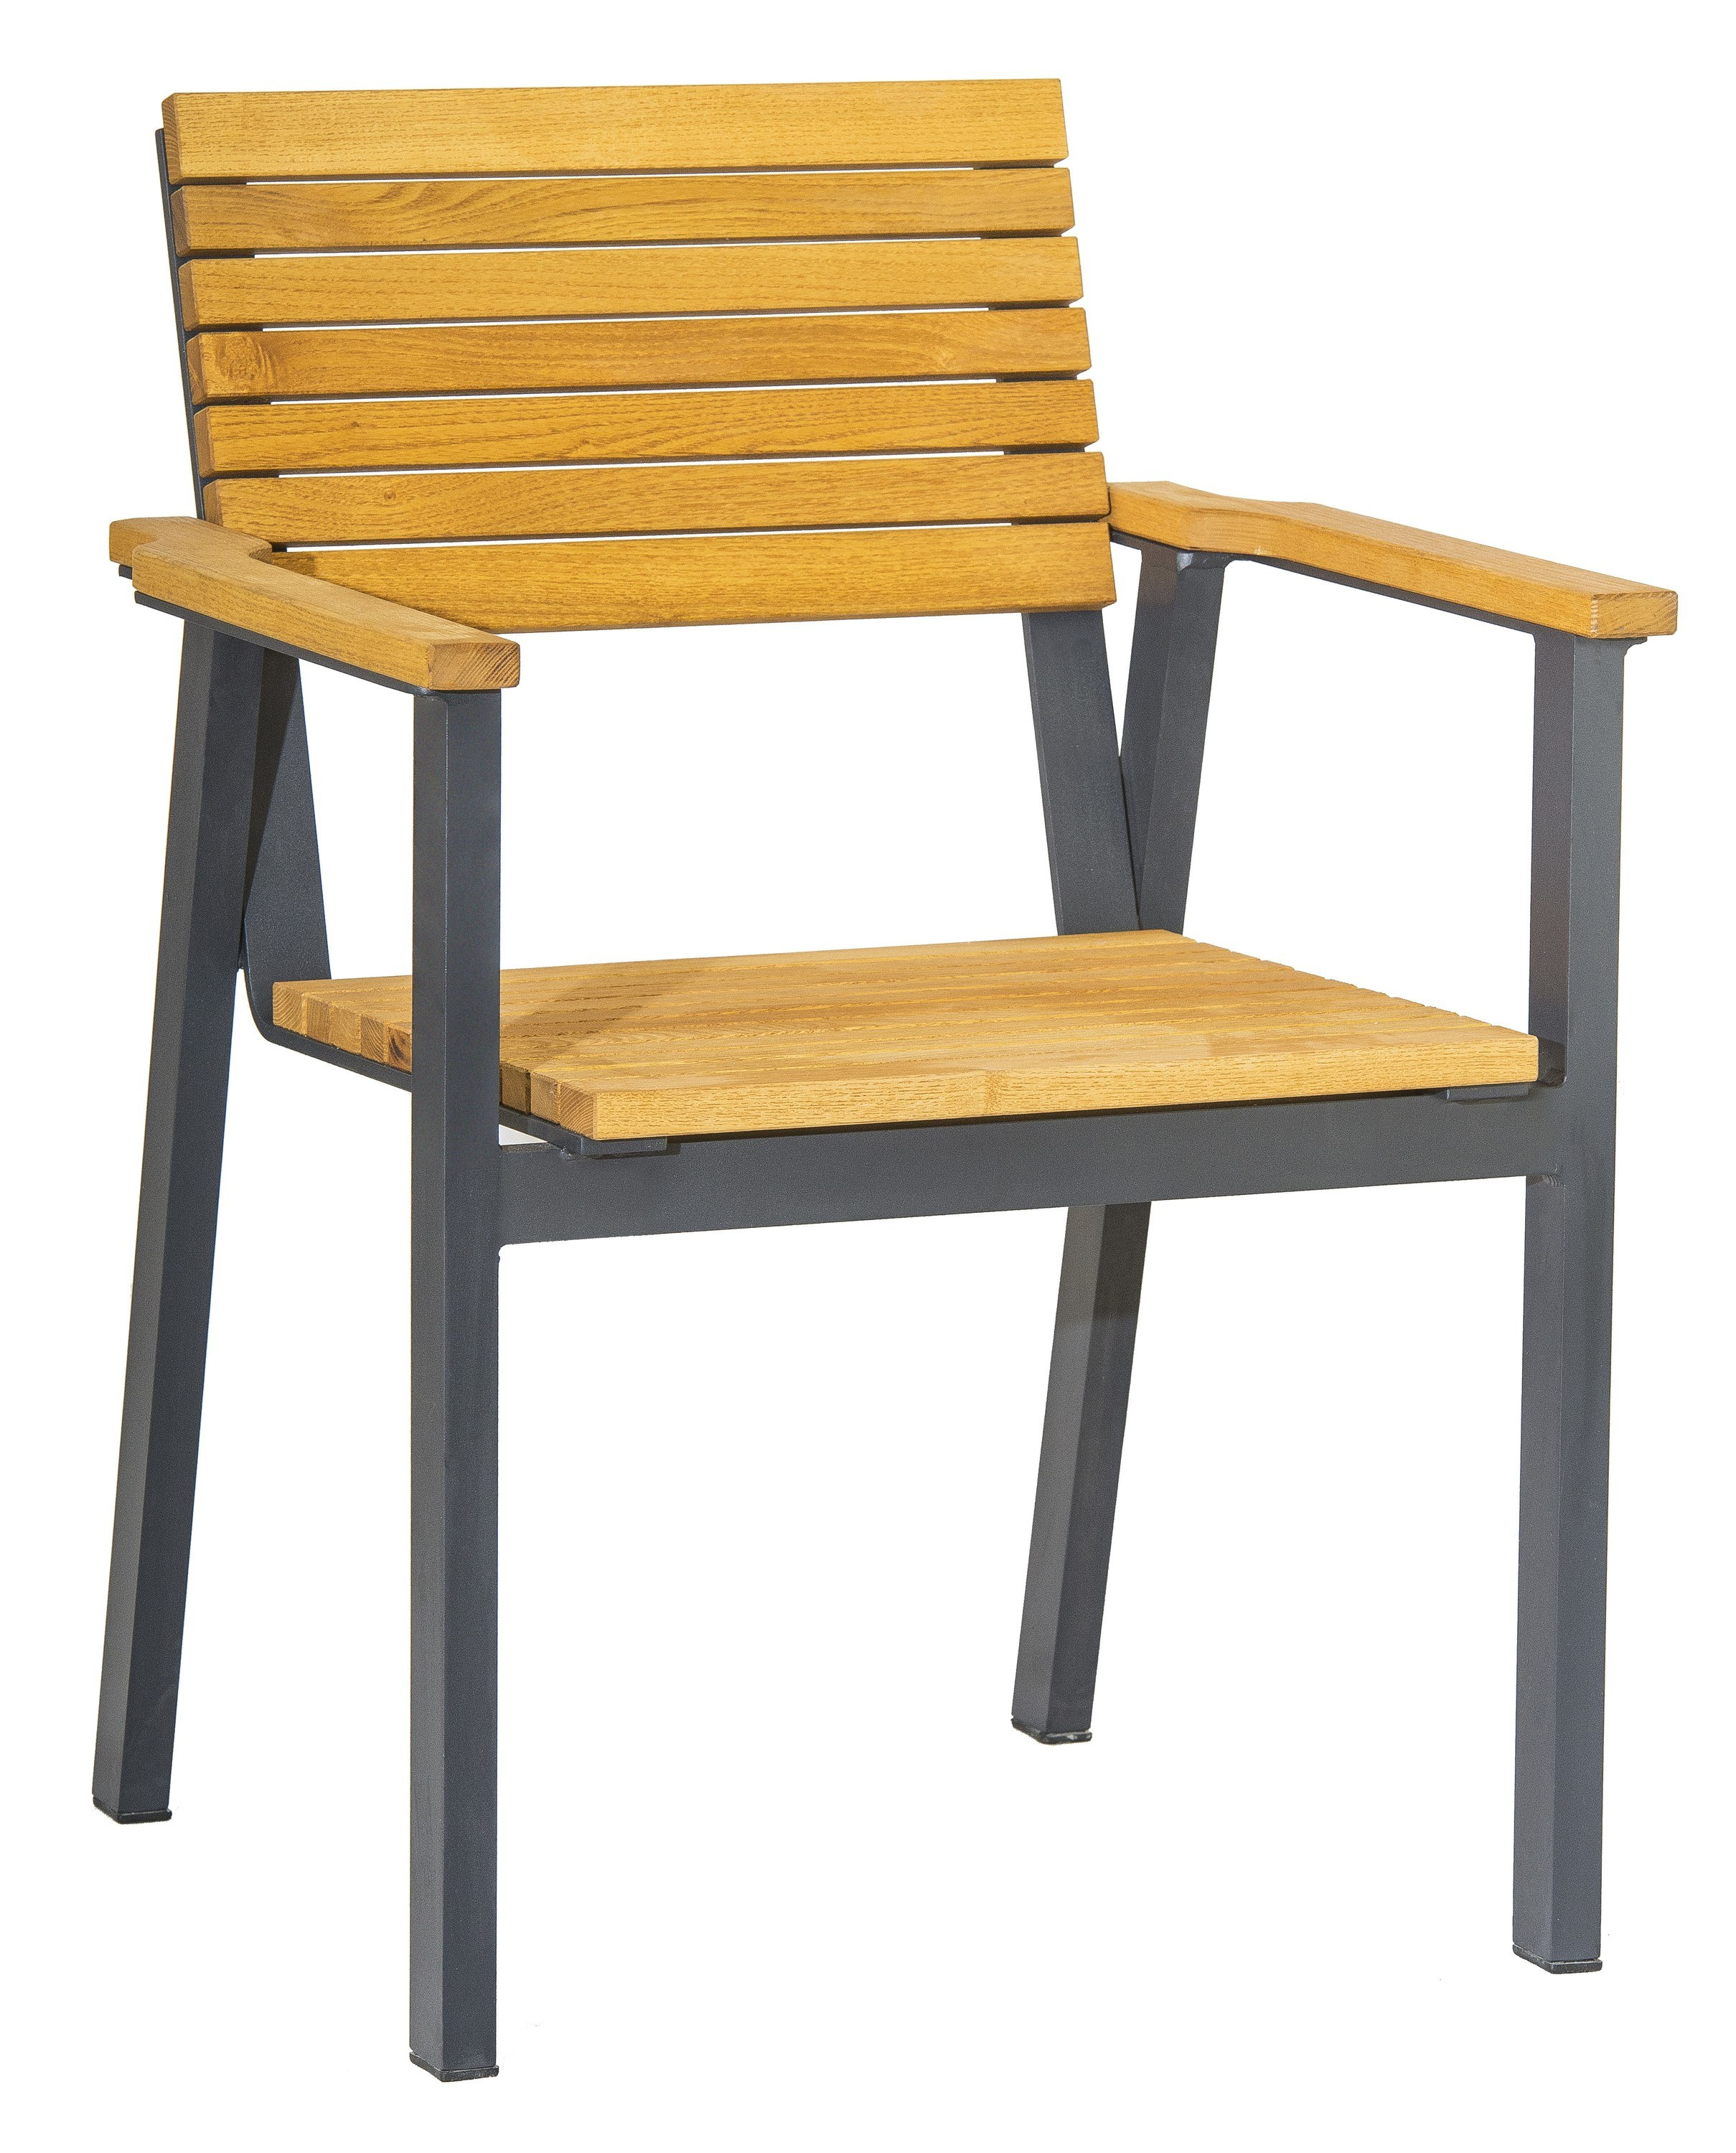 <p>Outdoor Furniture – Metal & Wooden Dining Collection – Moderno Armchair.</p> <p> </p> <p>Moderno Furniture – Armchair with hardwood seat armrests and backrest with narrow strips and symmetrical design.</p> <p> </p> <p>Ideally suited for either indoor or outdoor relaxed dining location in pubs or restaurants or more intimate café bistro al fresco area</p>